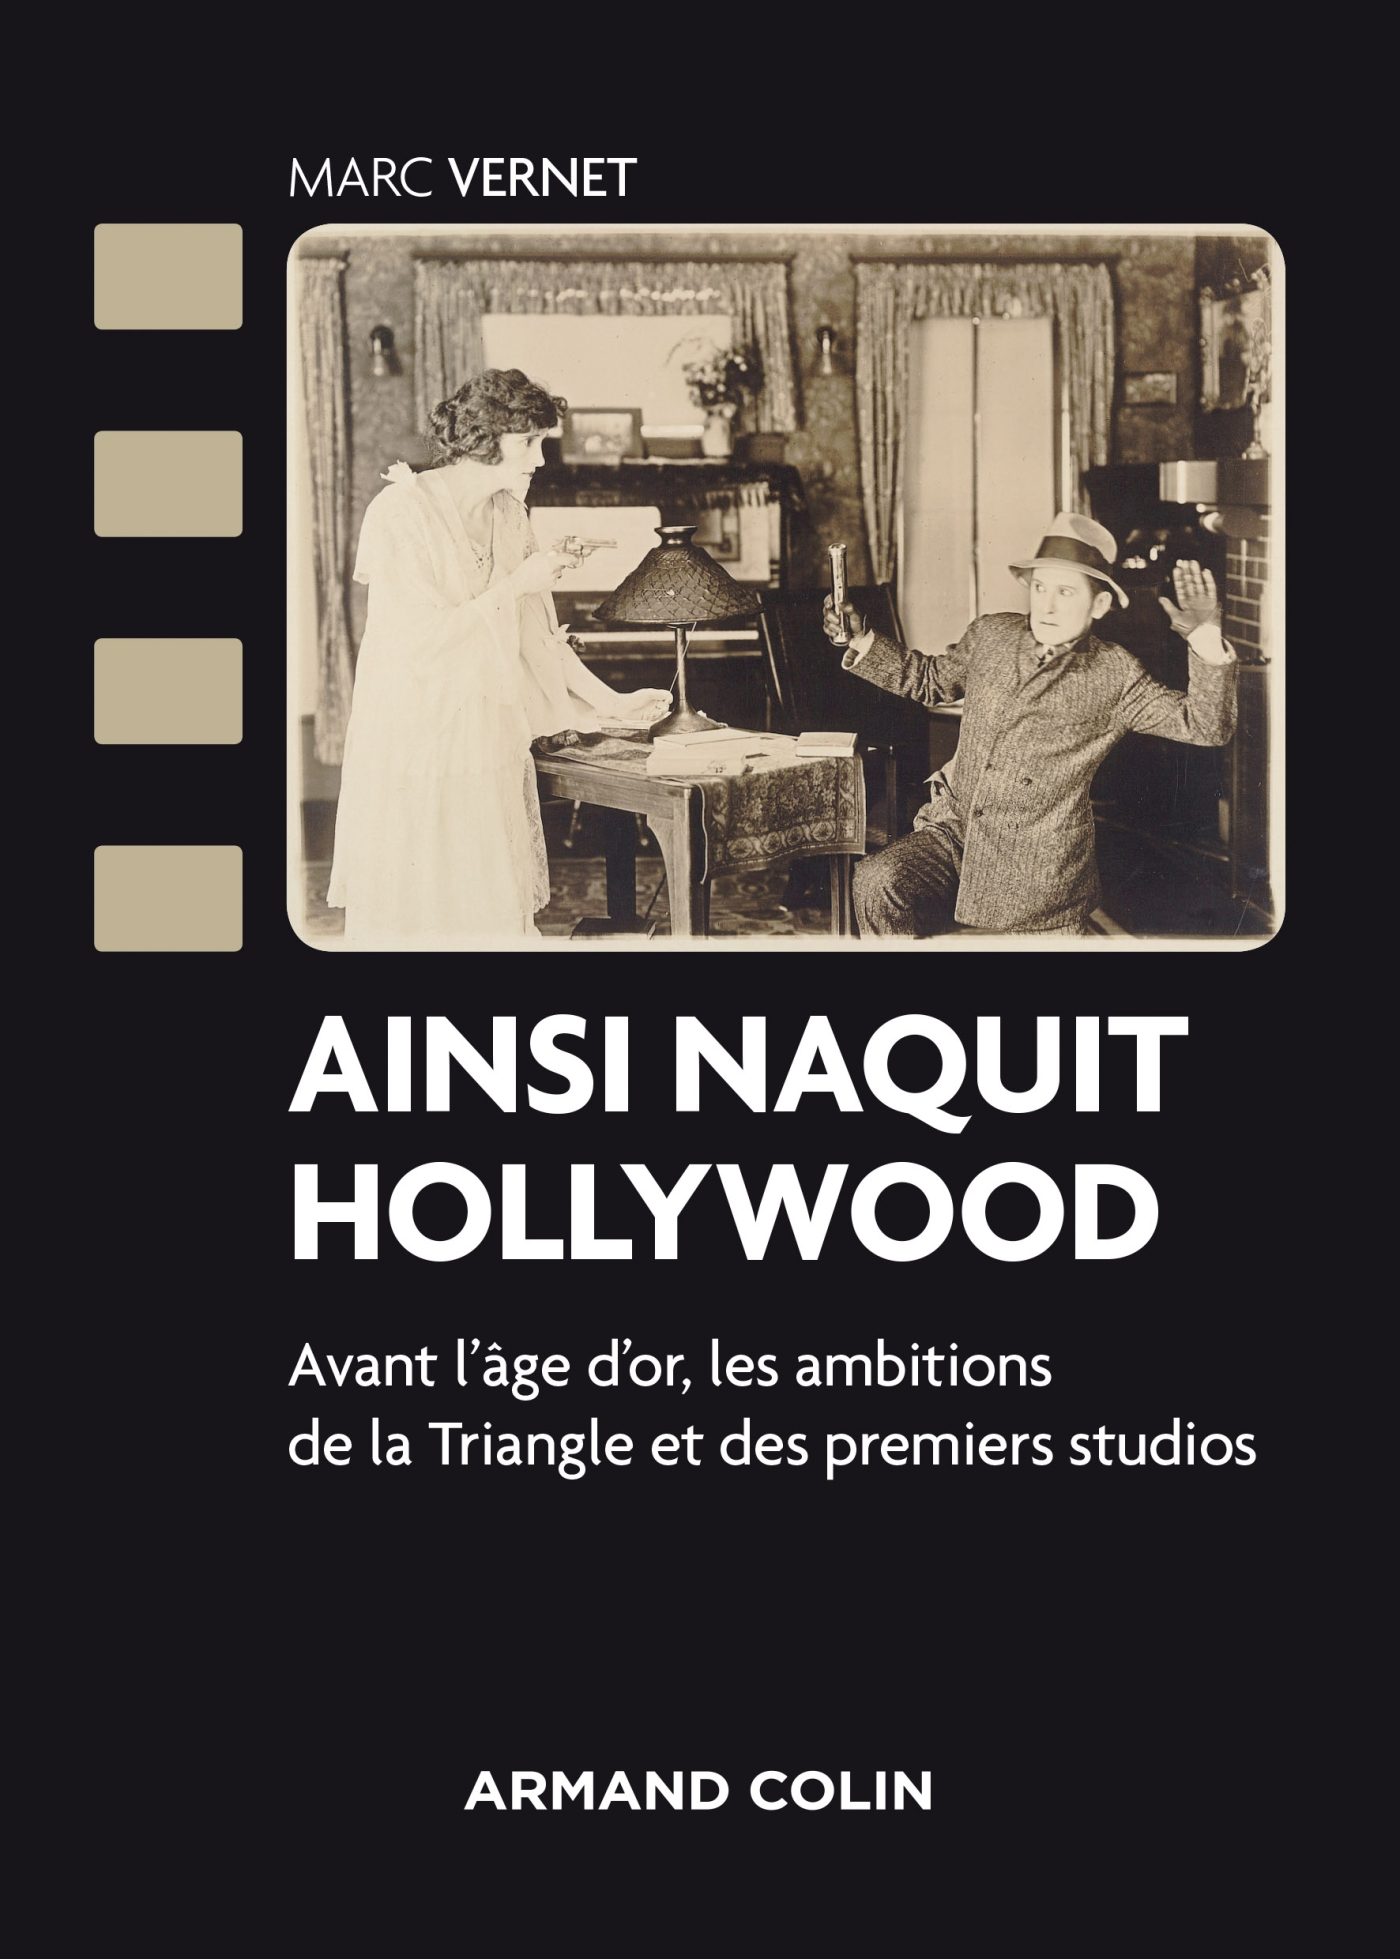 Ainsi naquit Hollywood